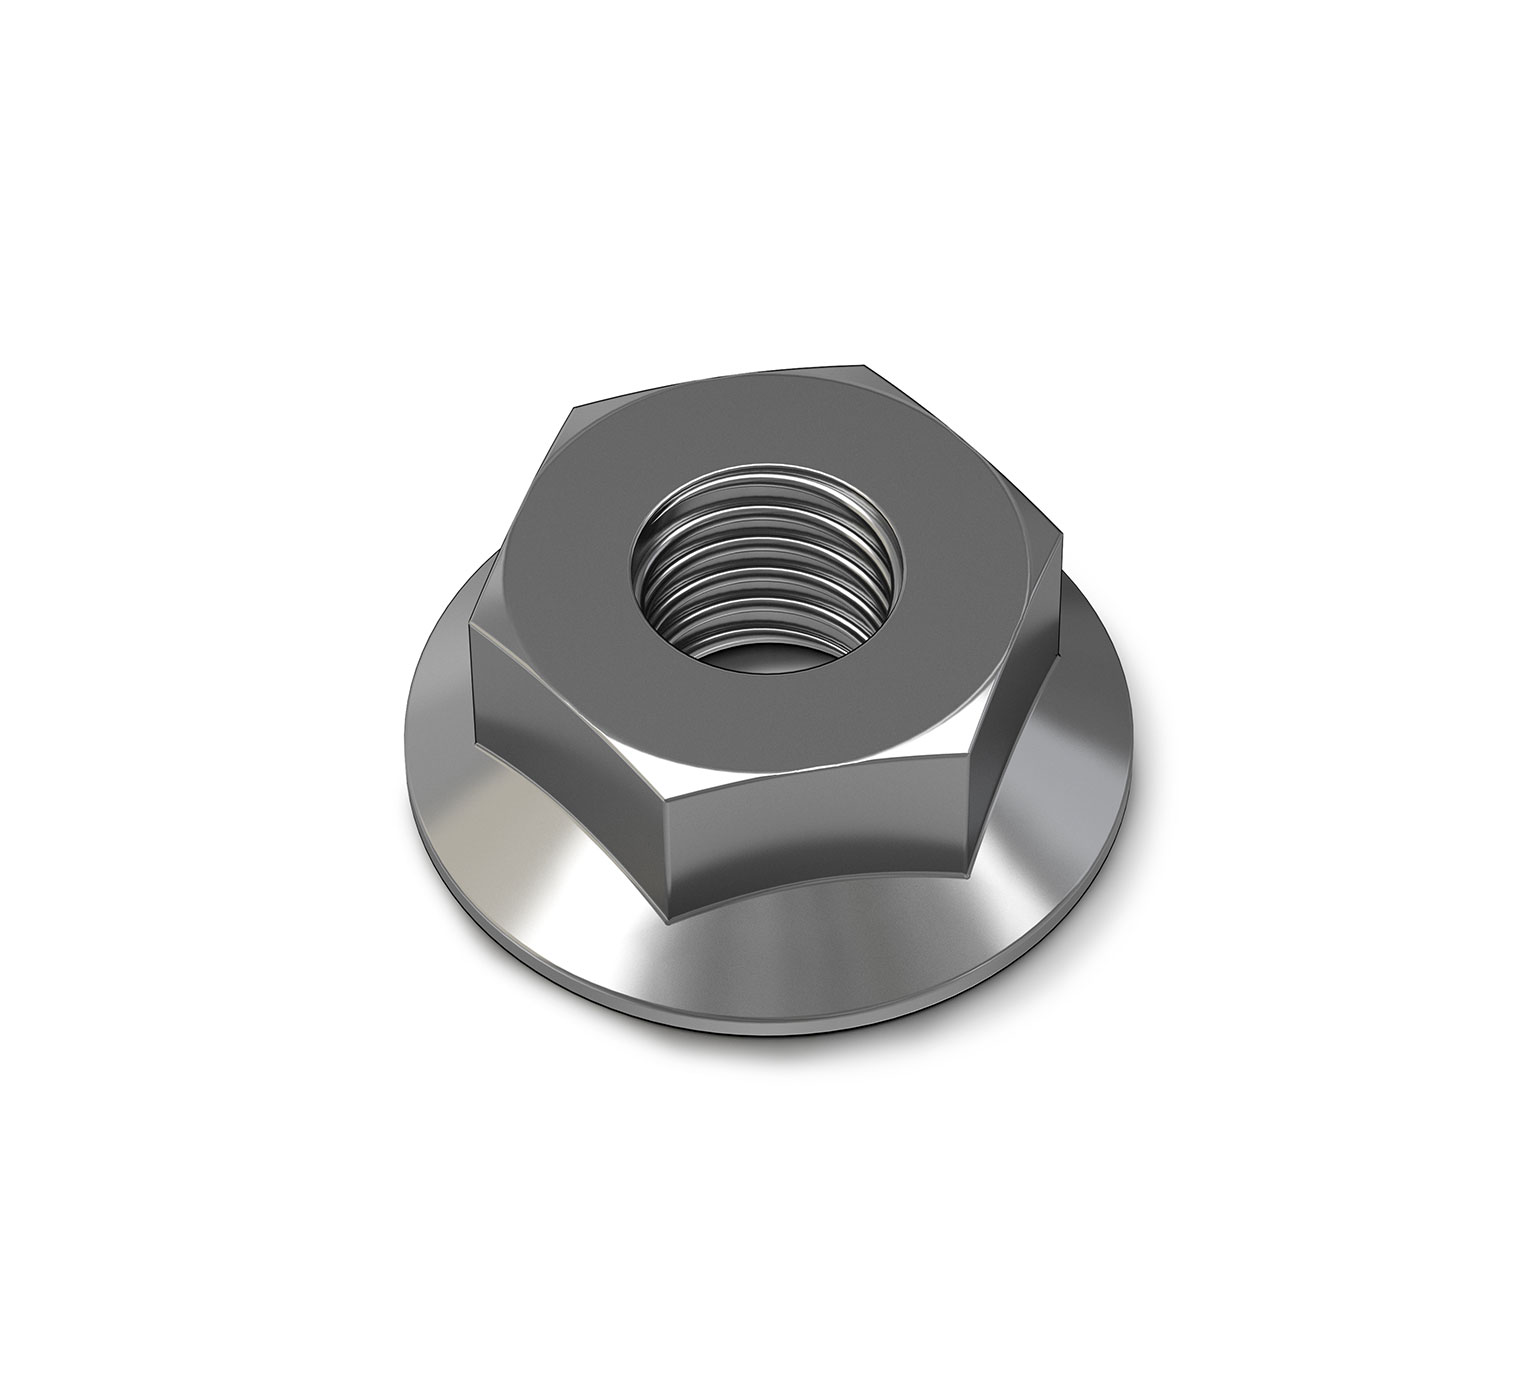 07791 Steel Hex Flange Nut - M8 Thread x 0.276 in alt 1